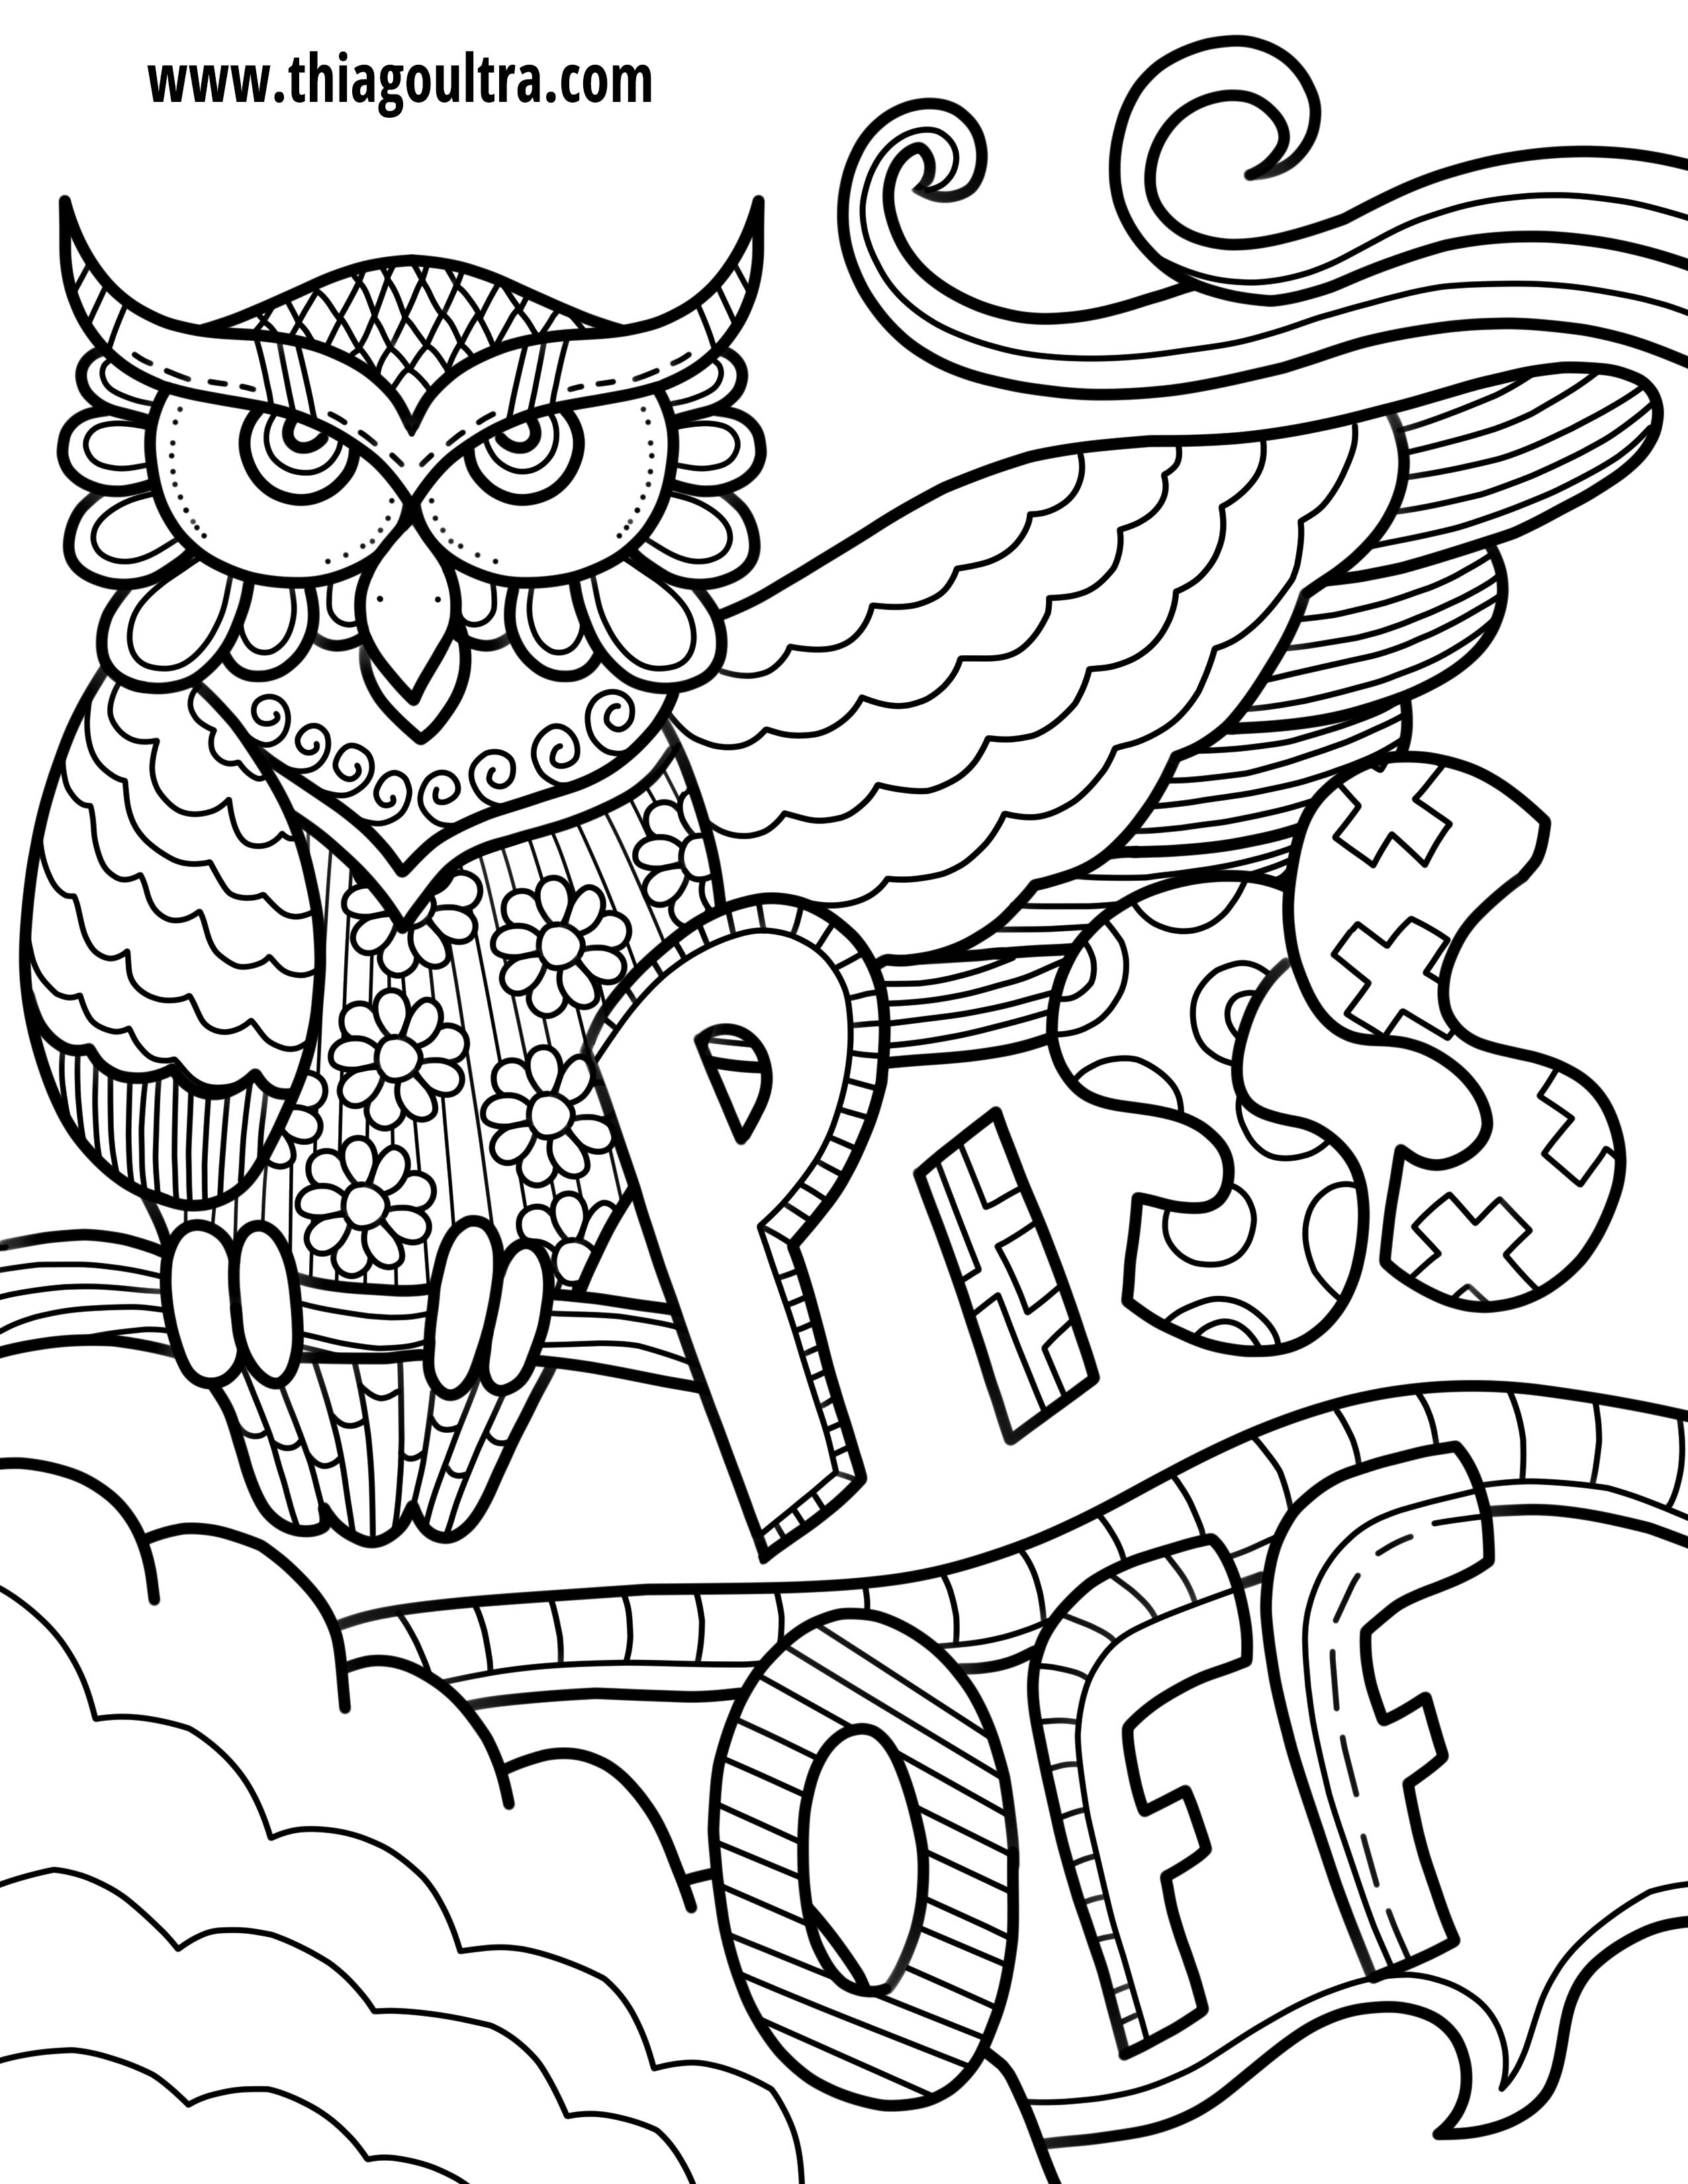 Pin by Melissa Toland on dirty coloring pages | Pinterest | Owl